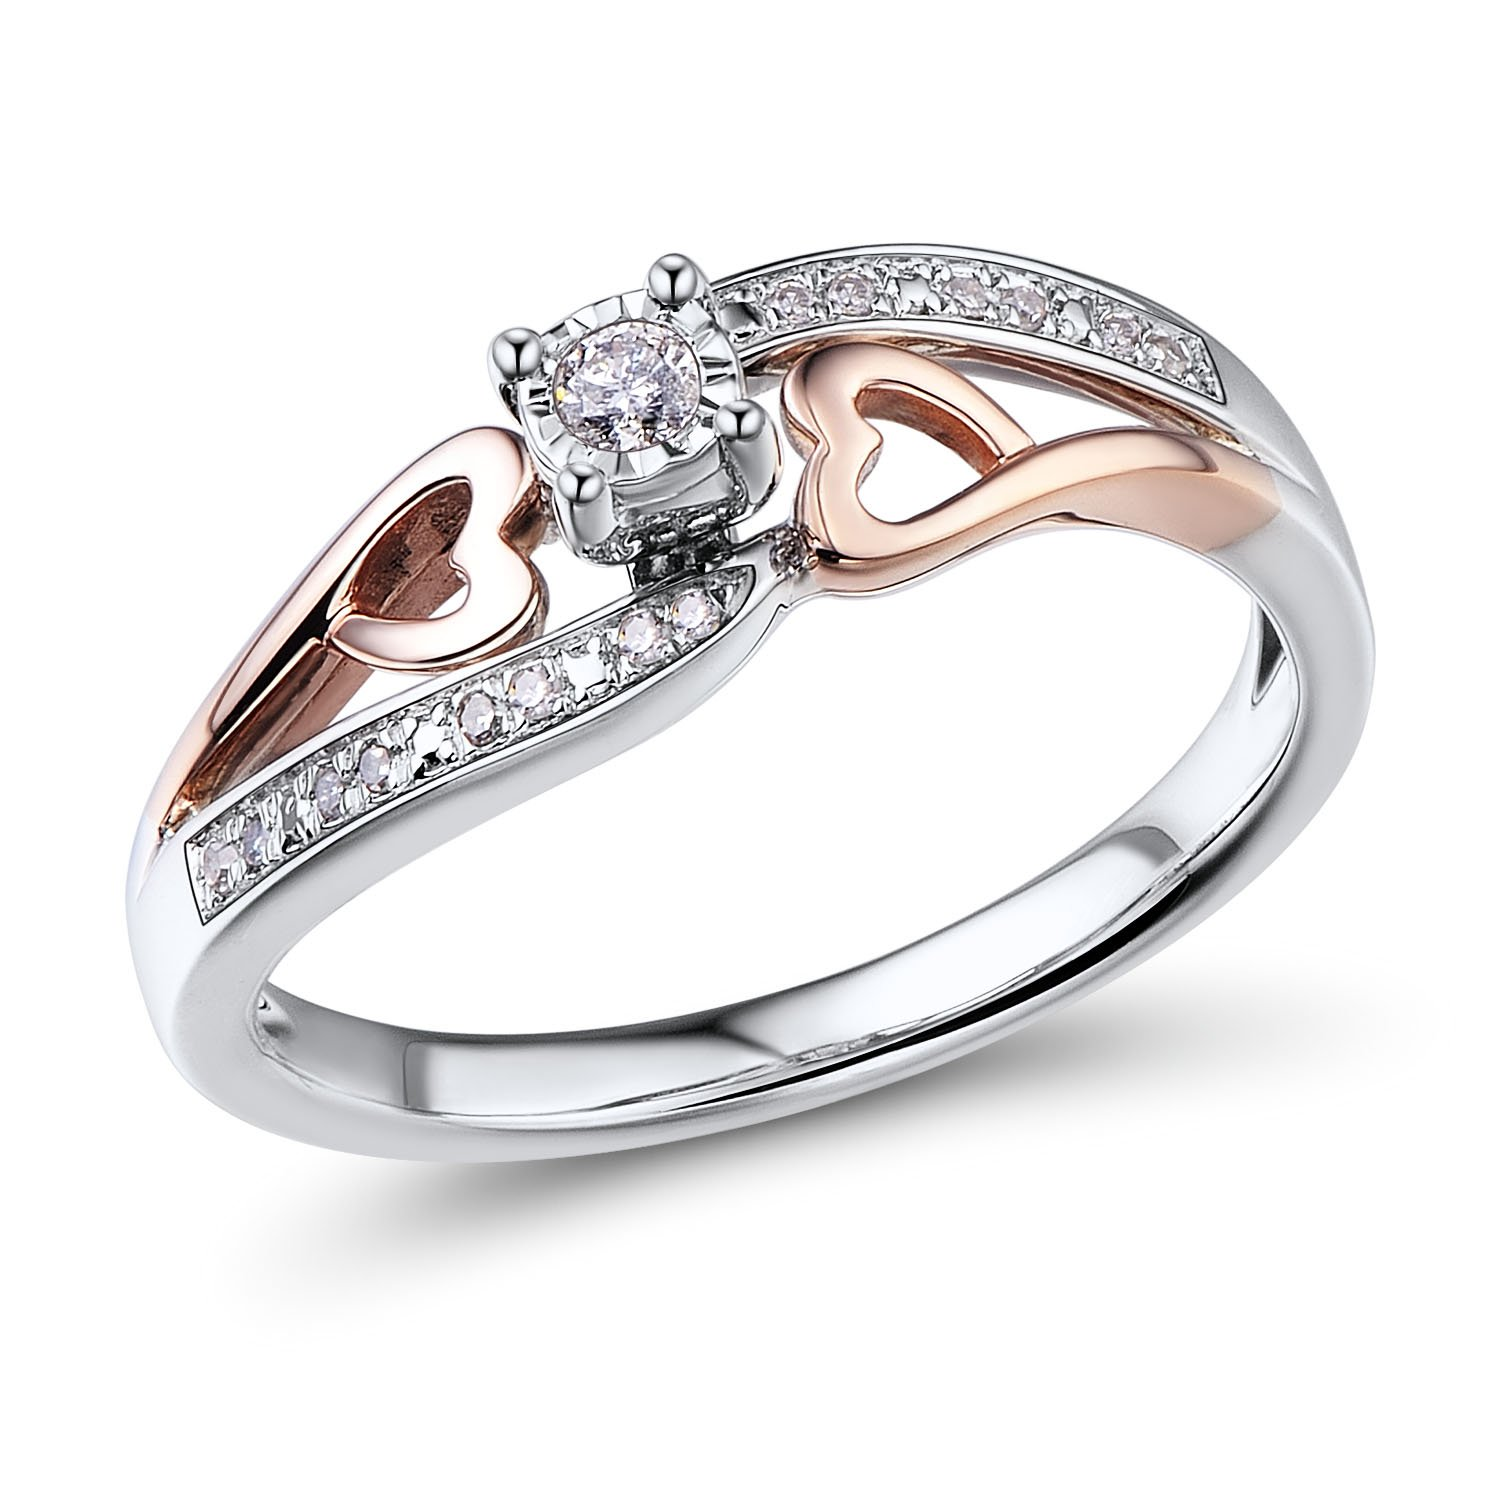 Diamond Promise Ring in 10k Rose Gold and Rhodium Plated Sterling Silver 1/10 cttw